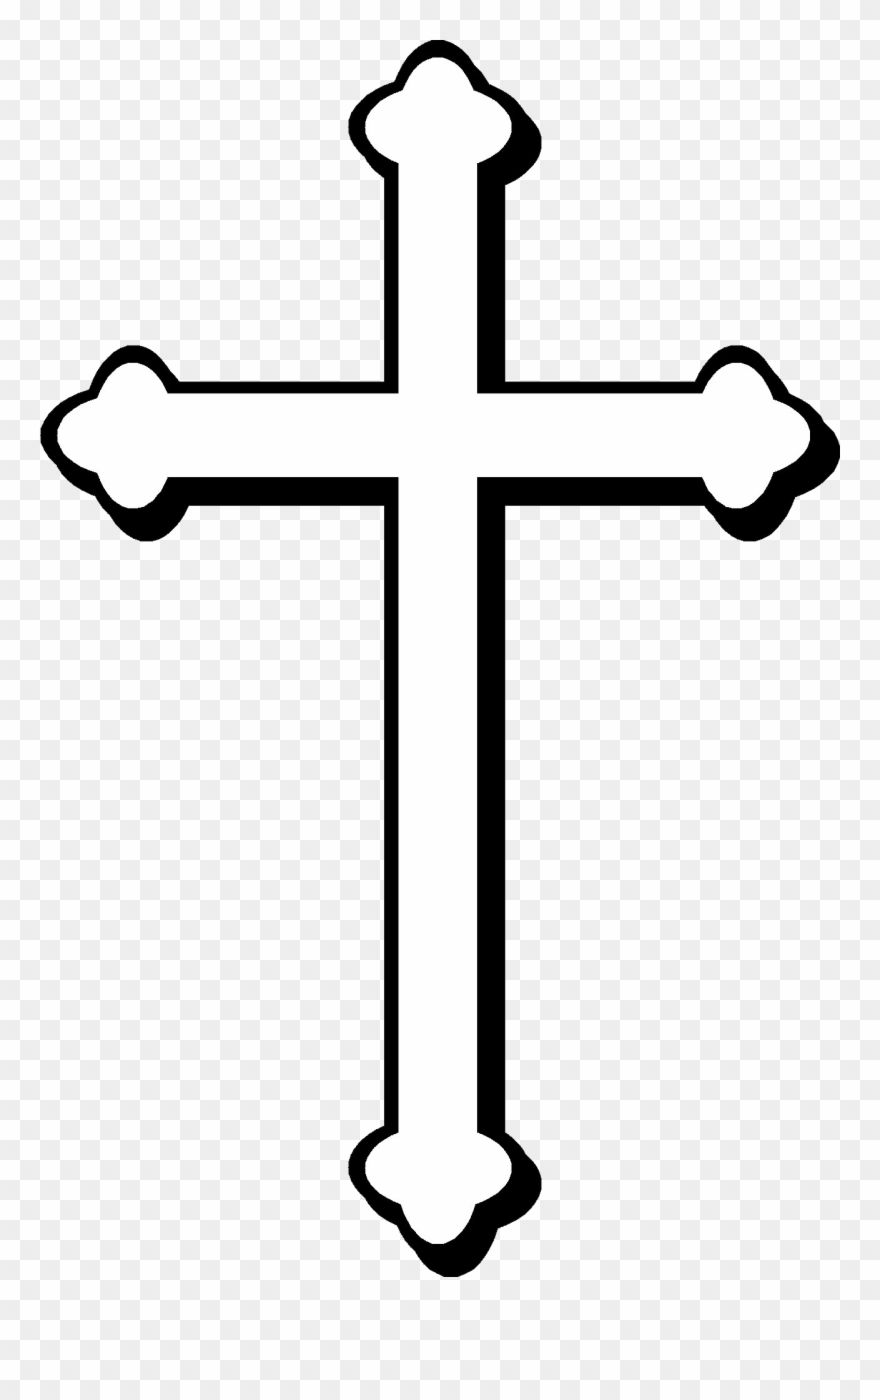 Cross Png Christian Cross Png Images Free Download.